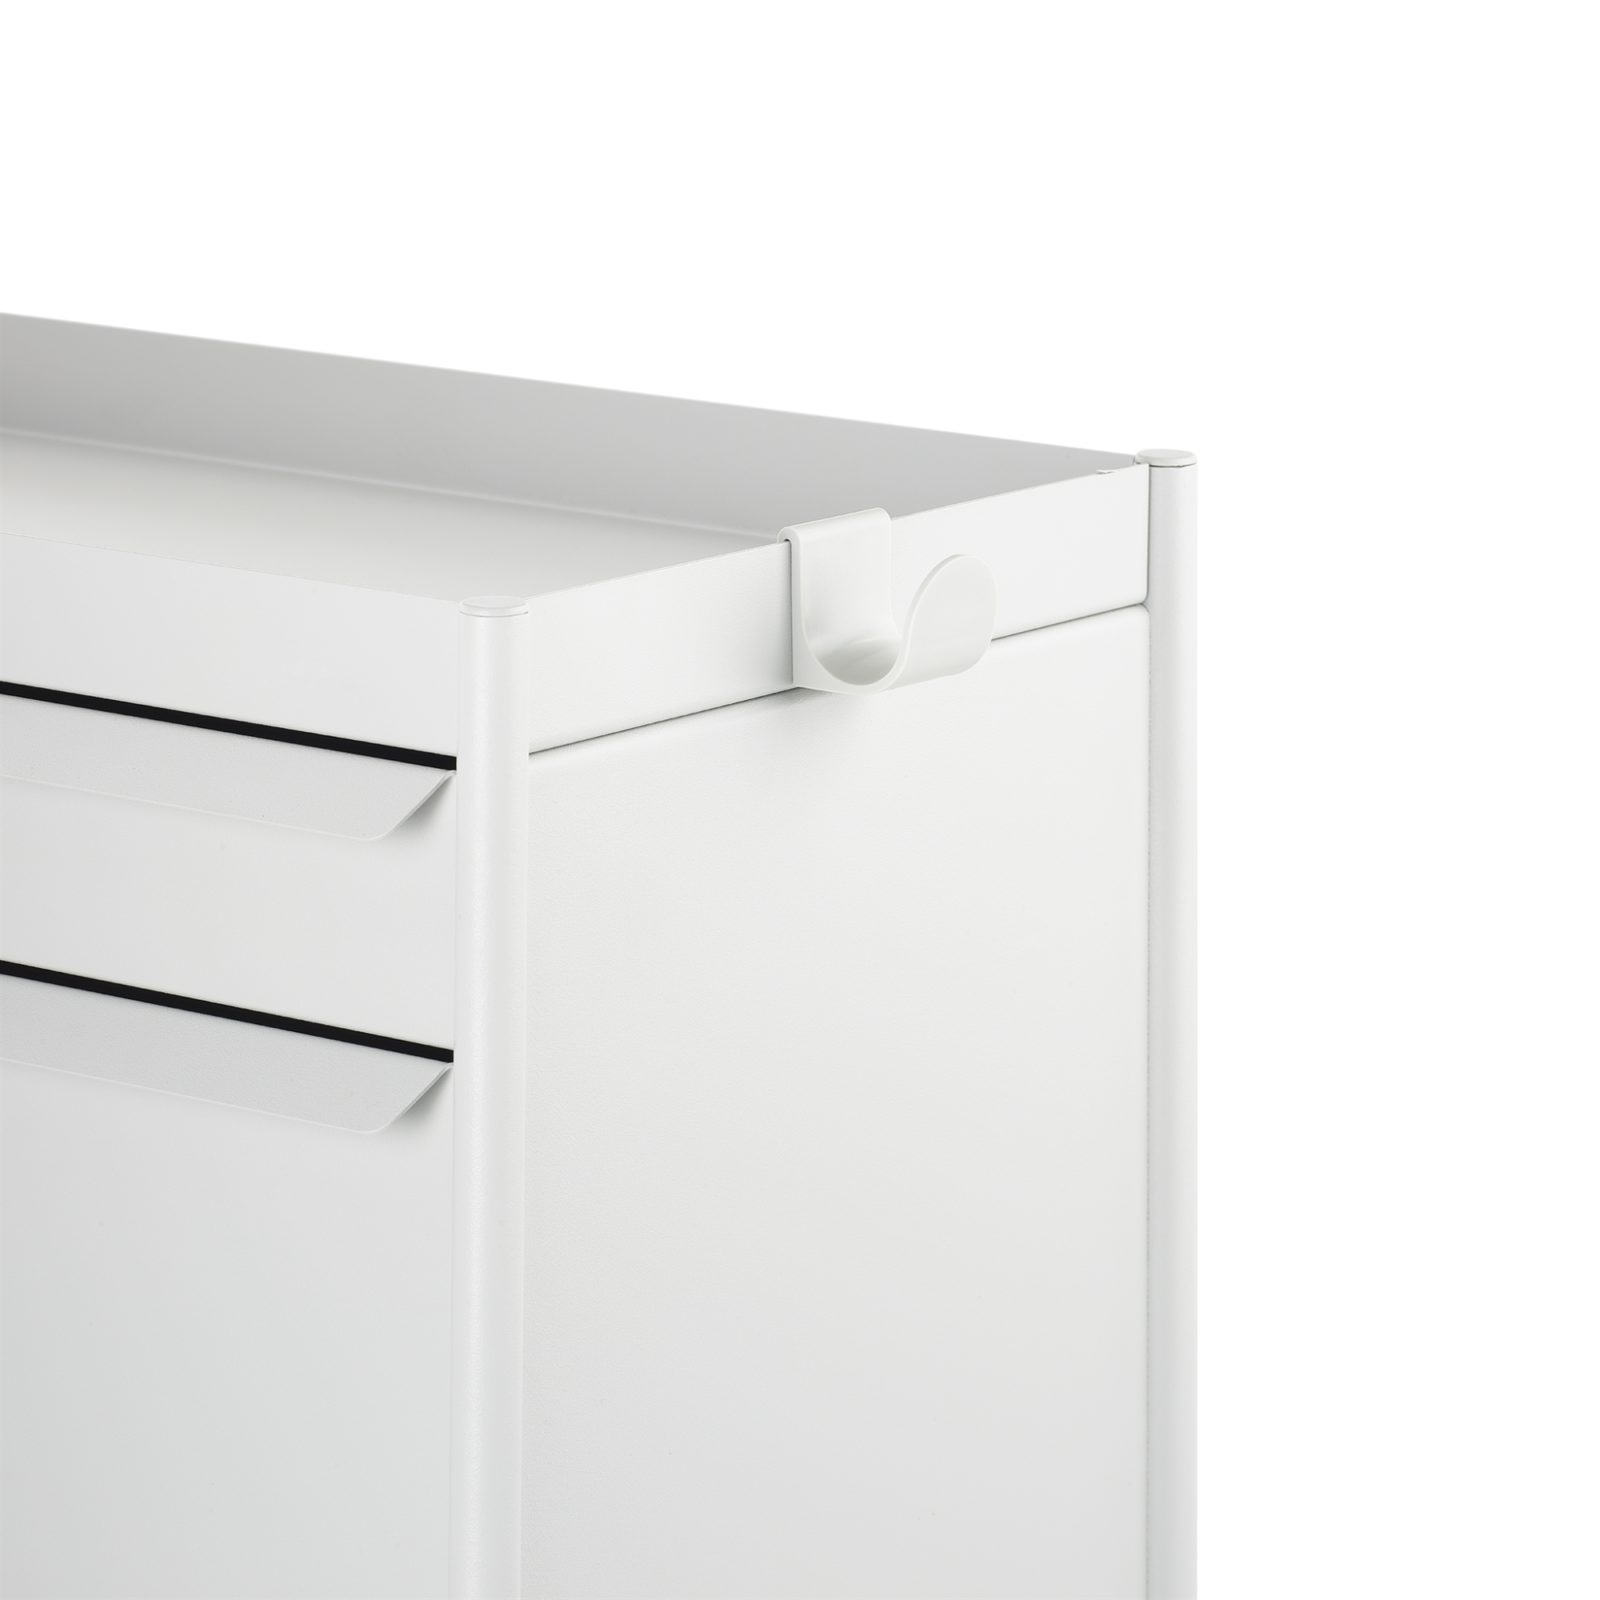 A white metal bag hook attached to the open top of a white individual OE1 Storage Trolley.